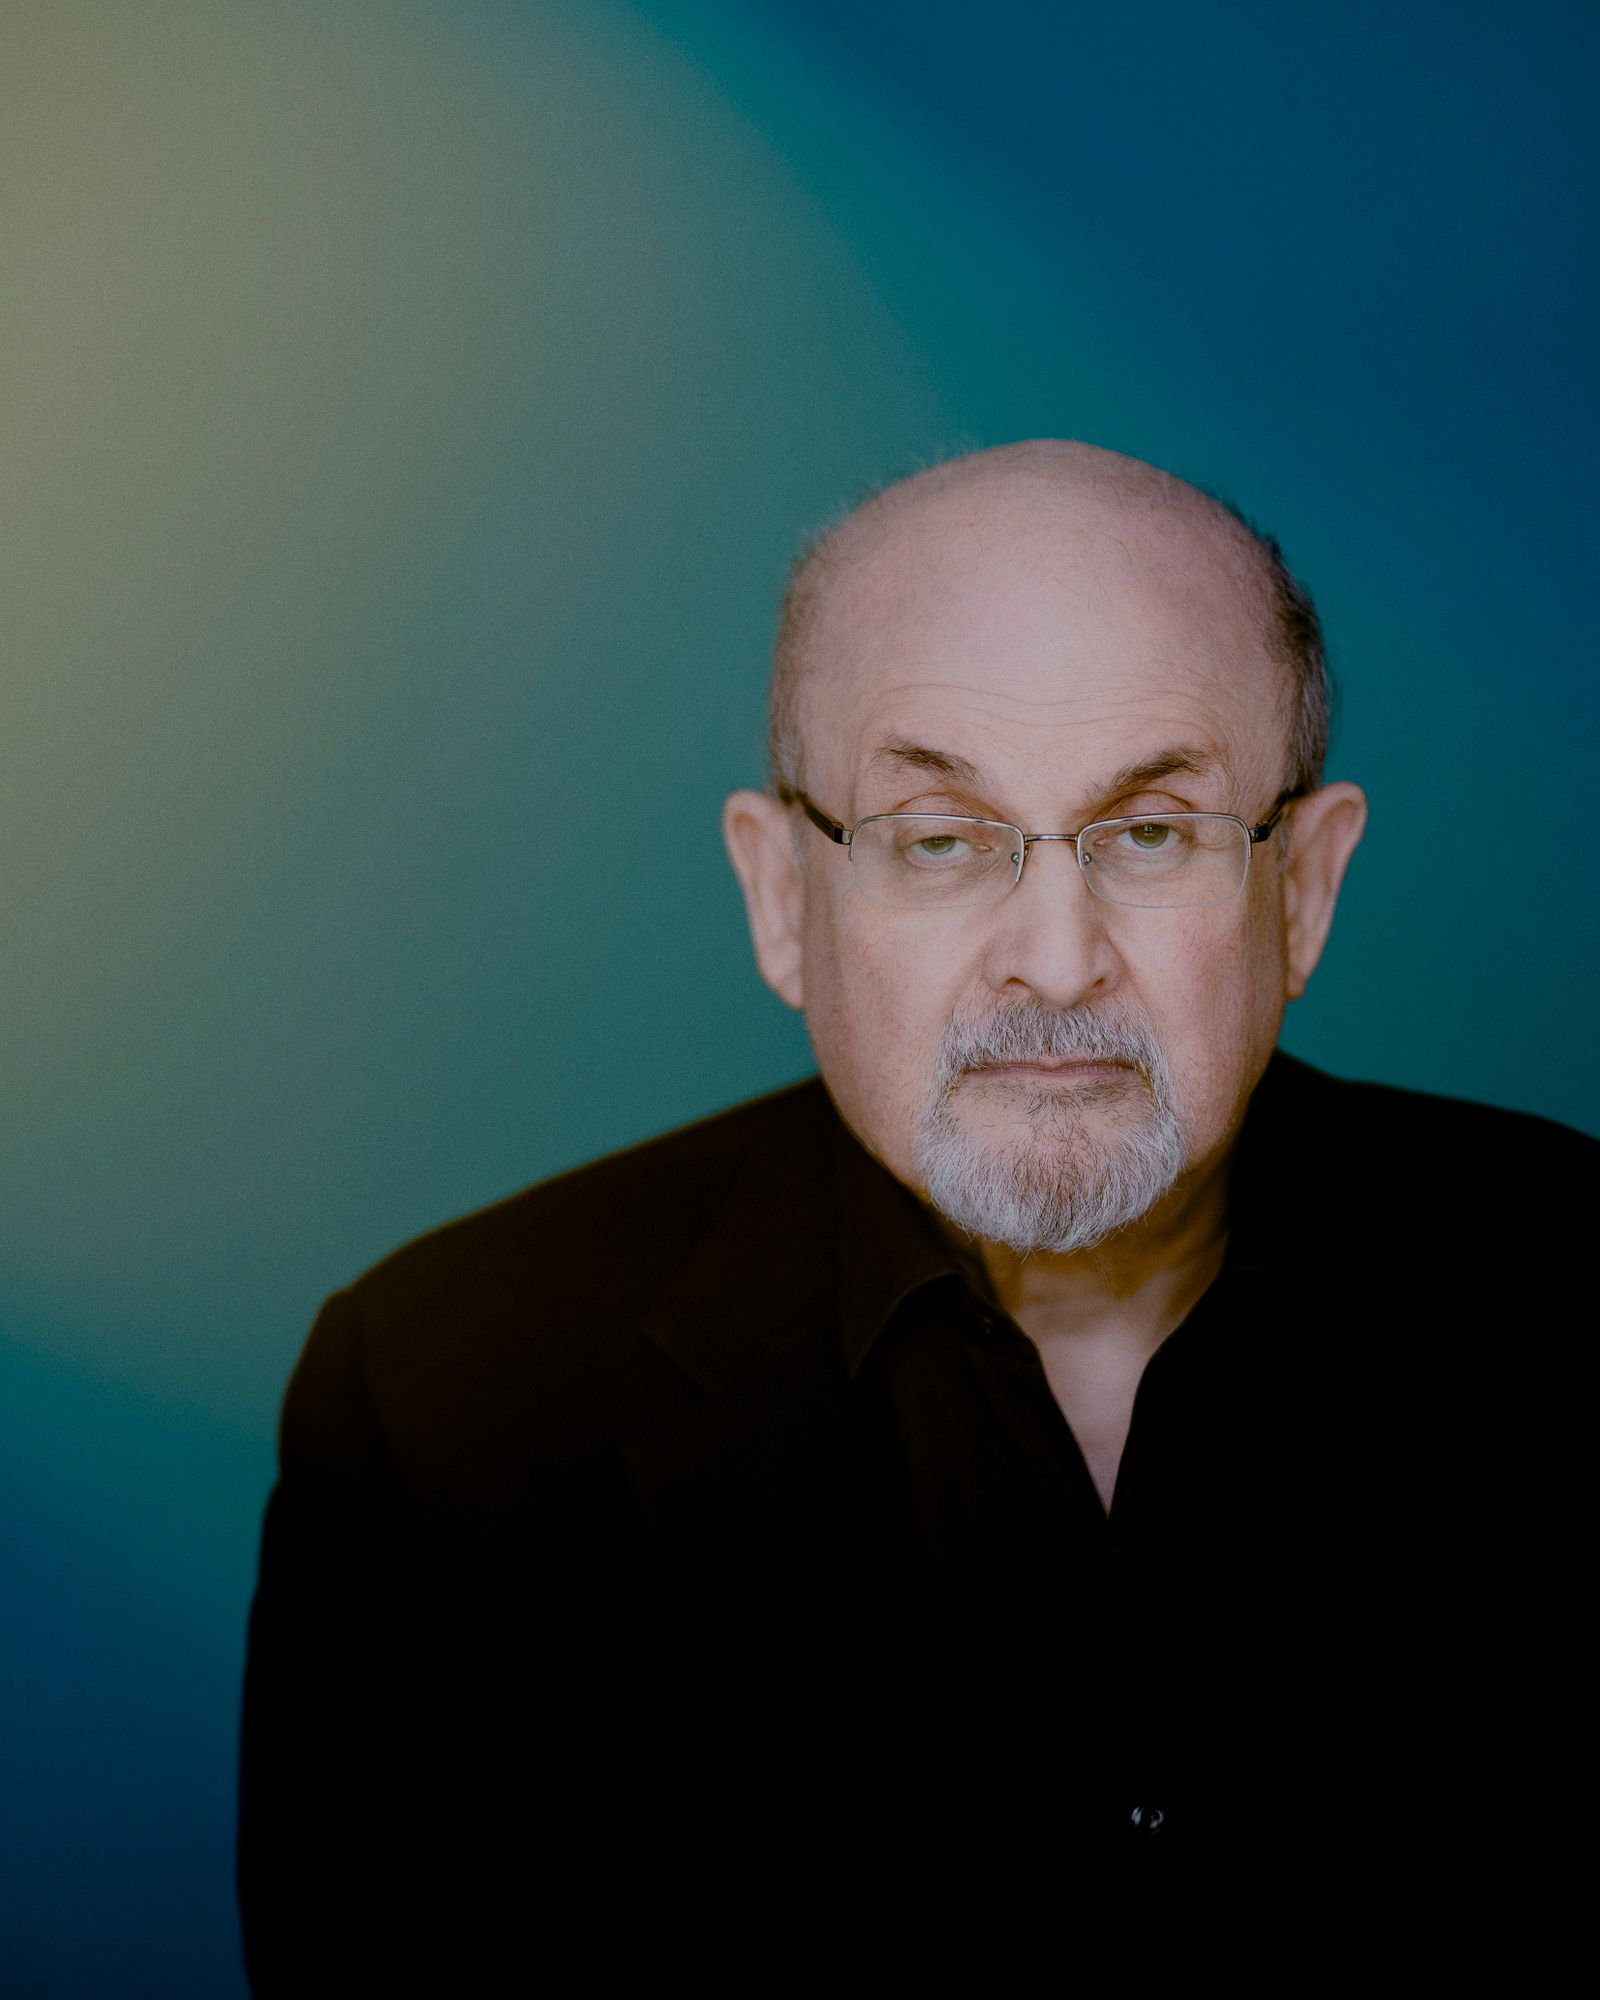 Salman Rushdie: ?I am stupidly optimistic ? it got me through those bad years?. Despite the obstacles thrown his way, the novelist remains indestructible. He talks about strong women, ?moral censorship? and the ?great wound? of his life.